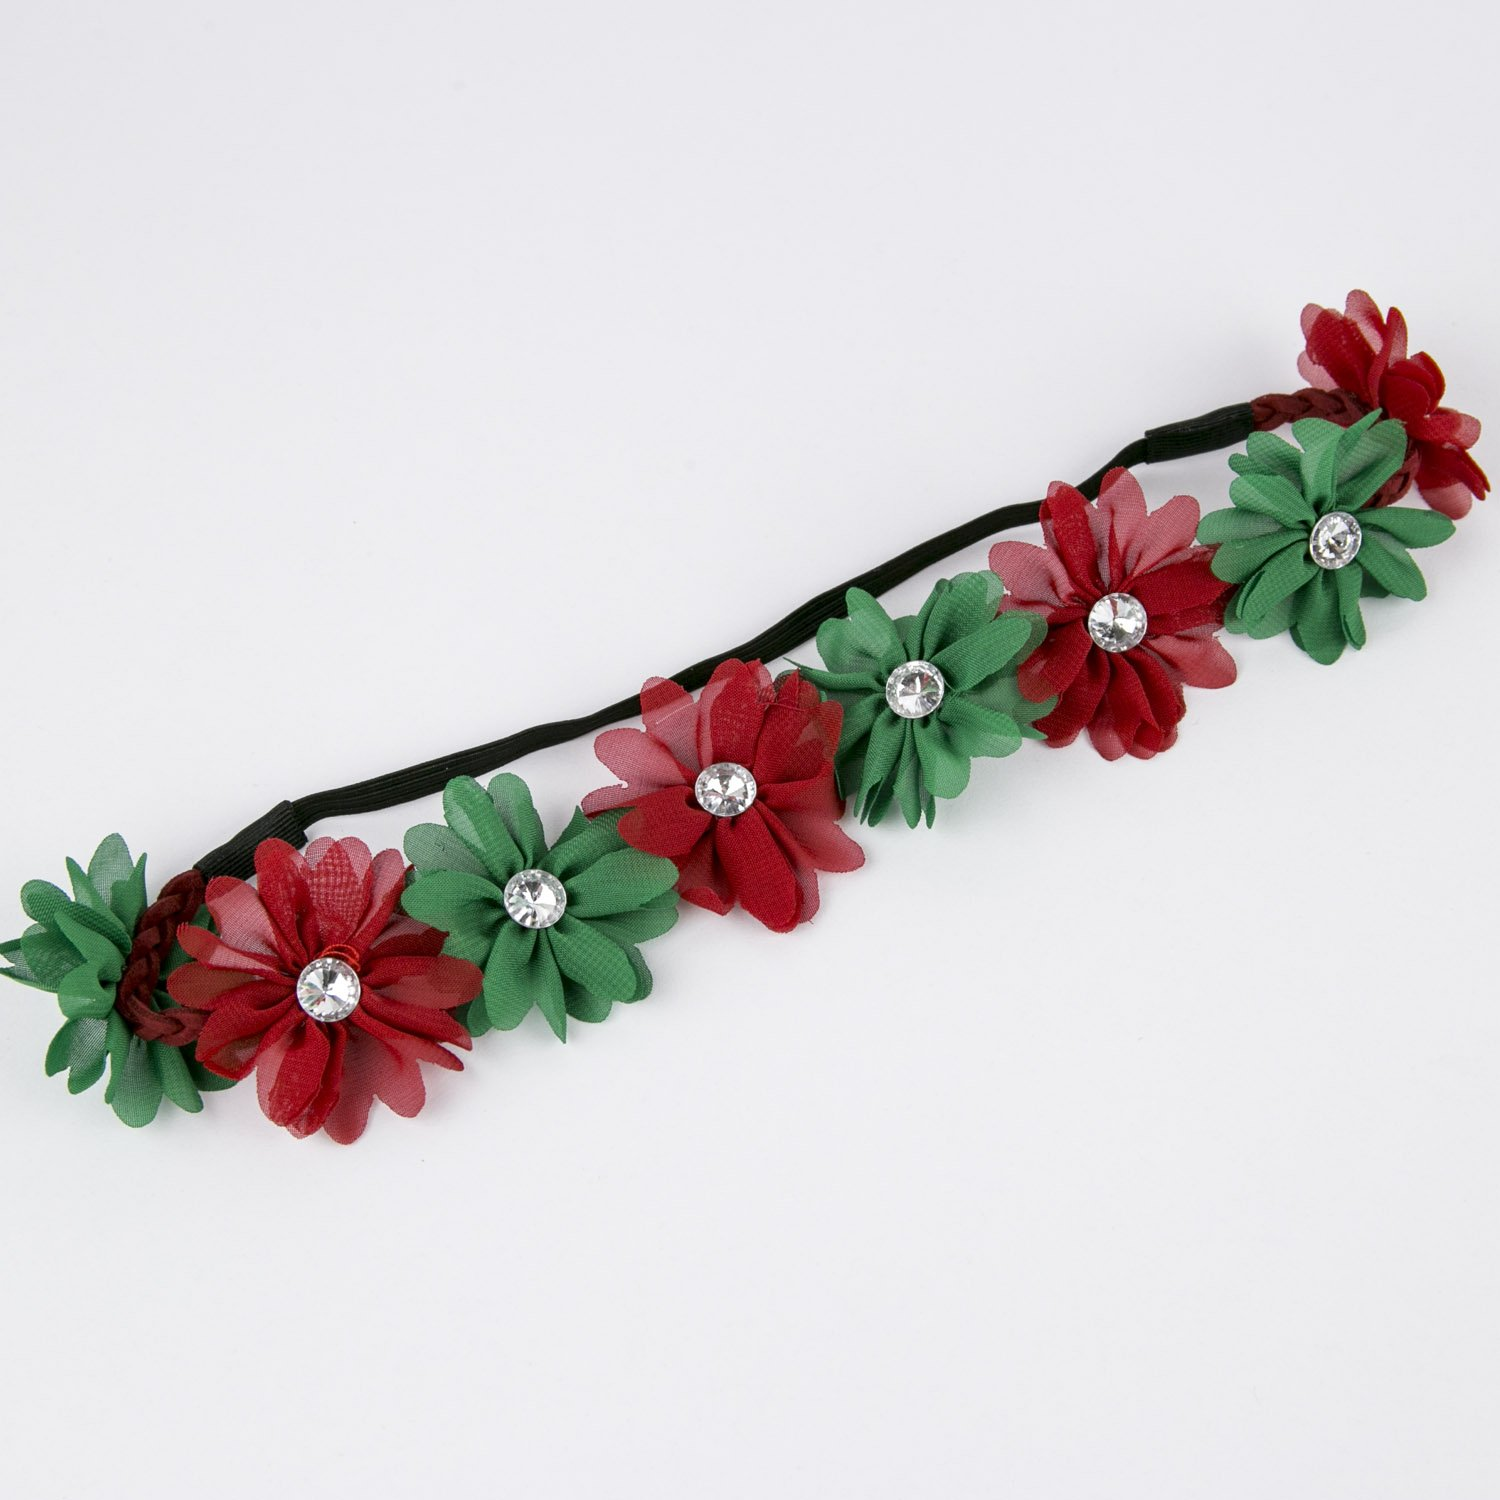 c820e5f59895d One Size Fits all . Floral Headband Crown. Flower Wreath. Includeds Jeweled  Crystal Flower White Red Green